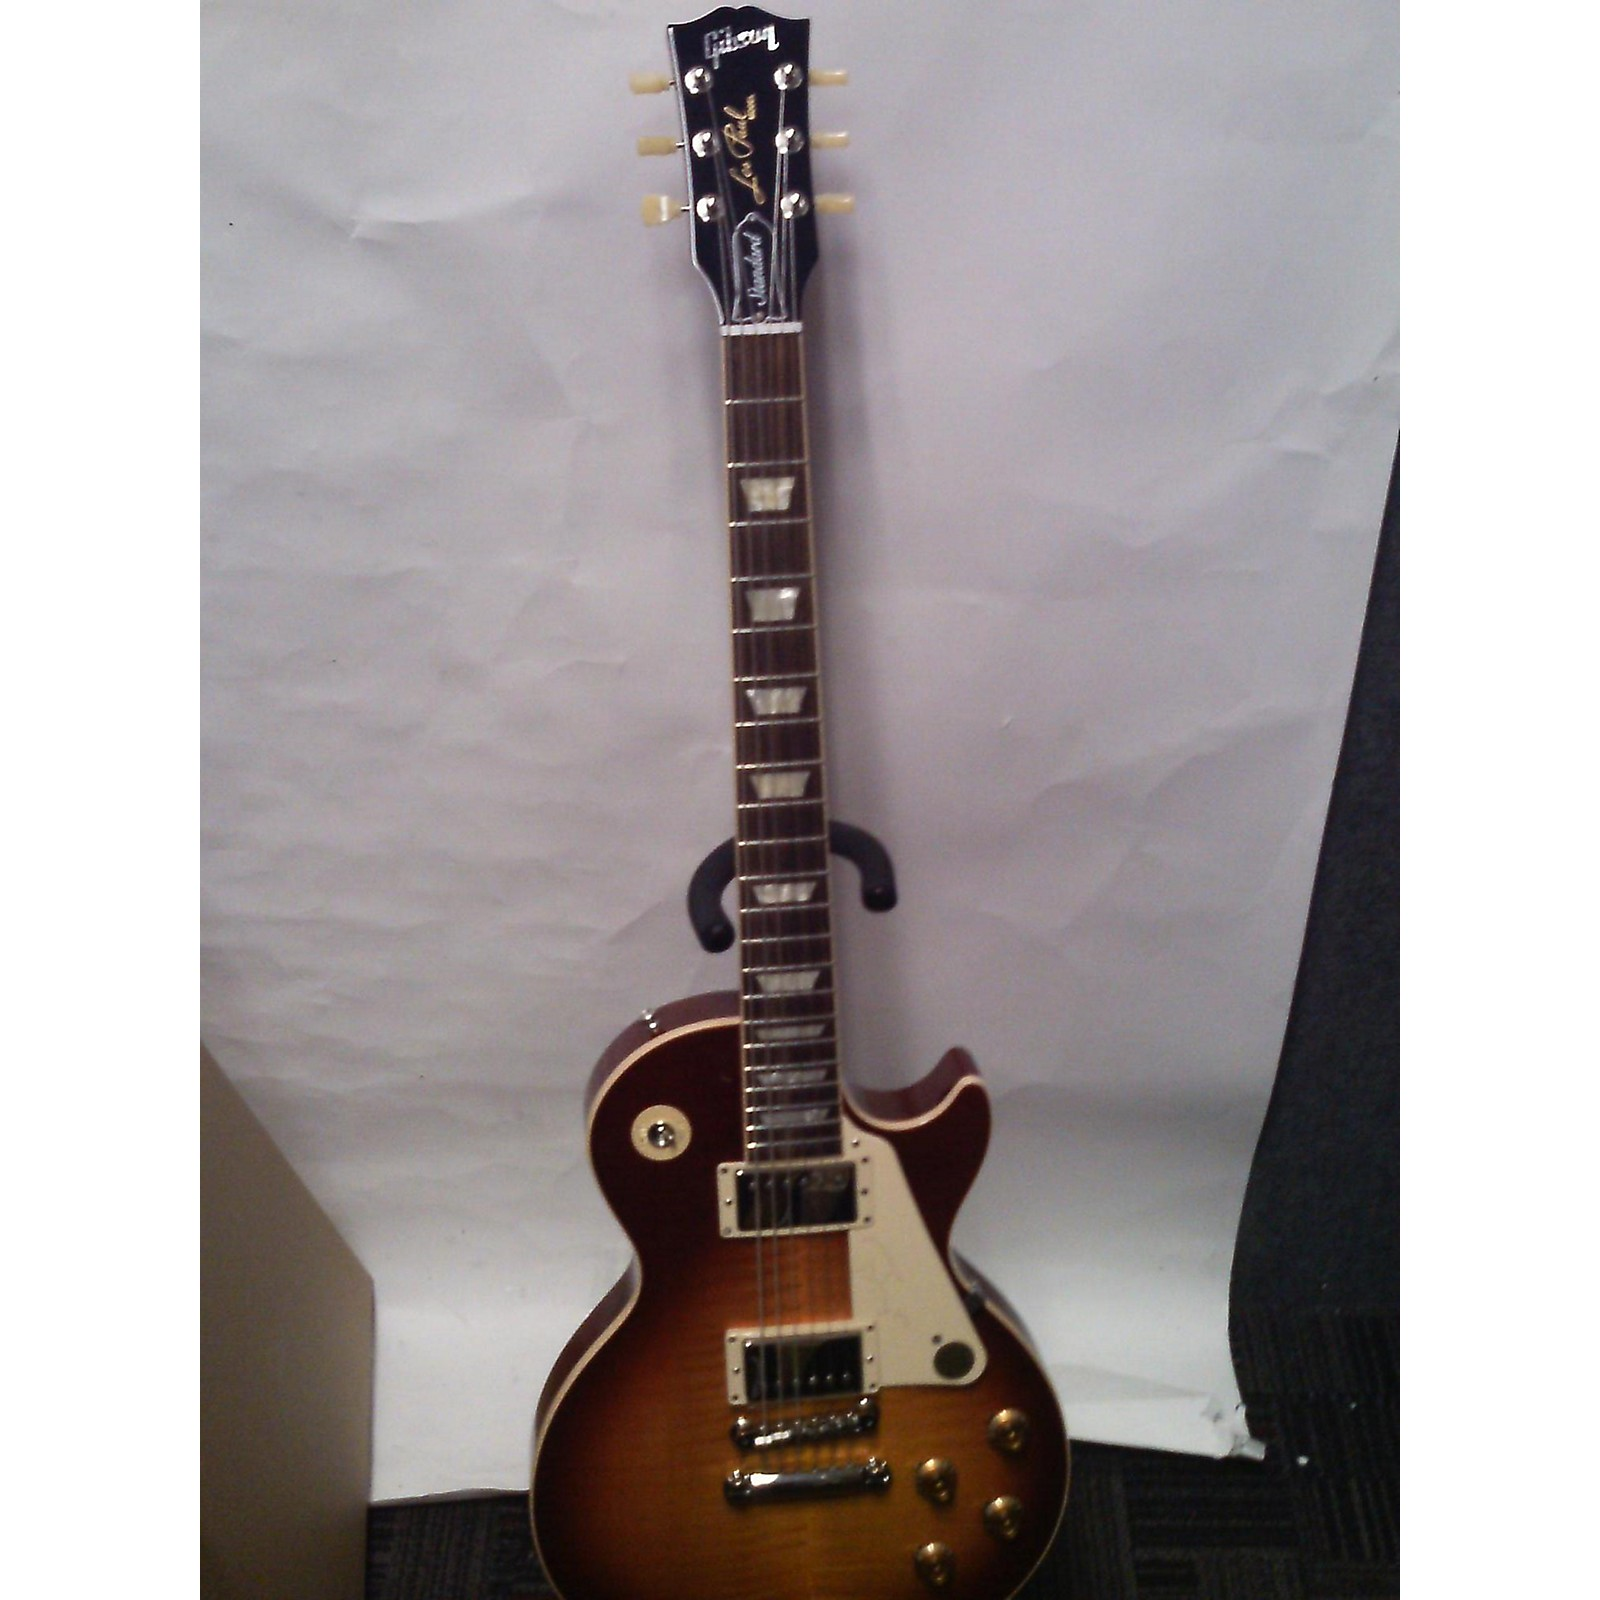 Gibson 2019 2019 Les Paul Standard 50s Neck Solid Body Electric Guitar